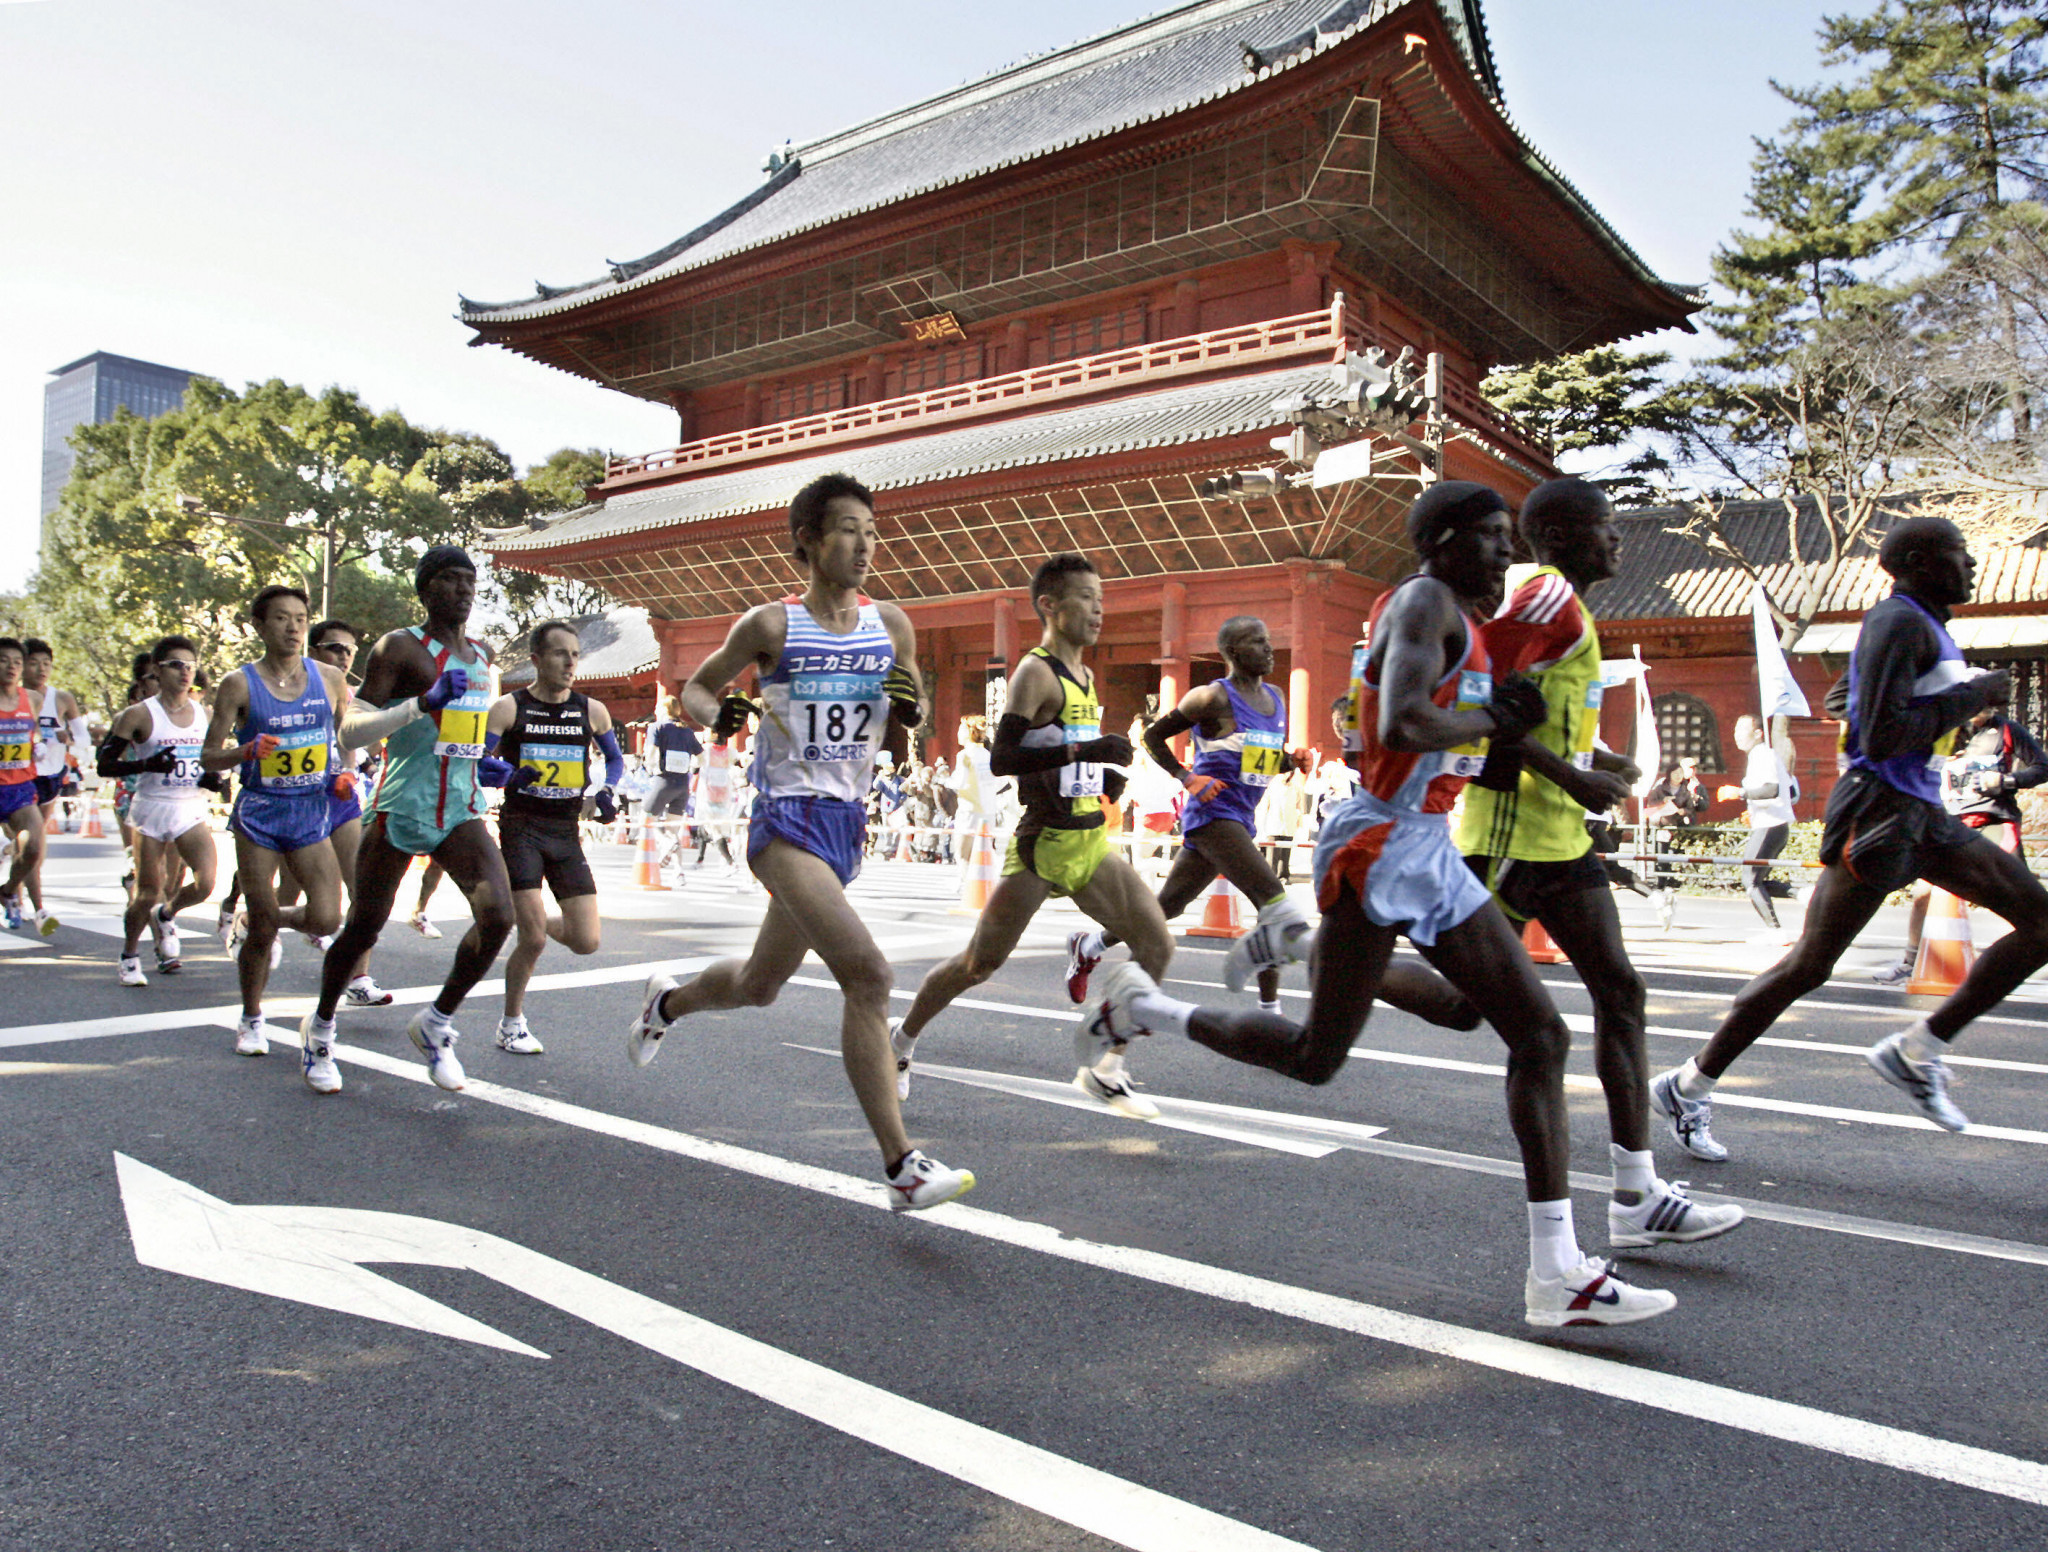 Next Tokyo Marathon given October 2021 date, after Olympic Games